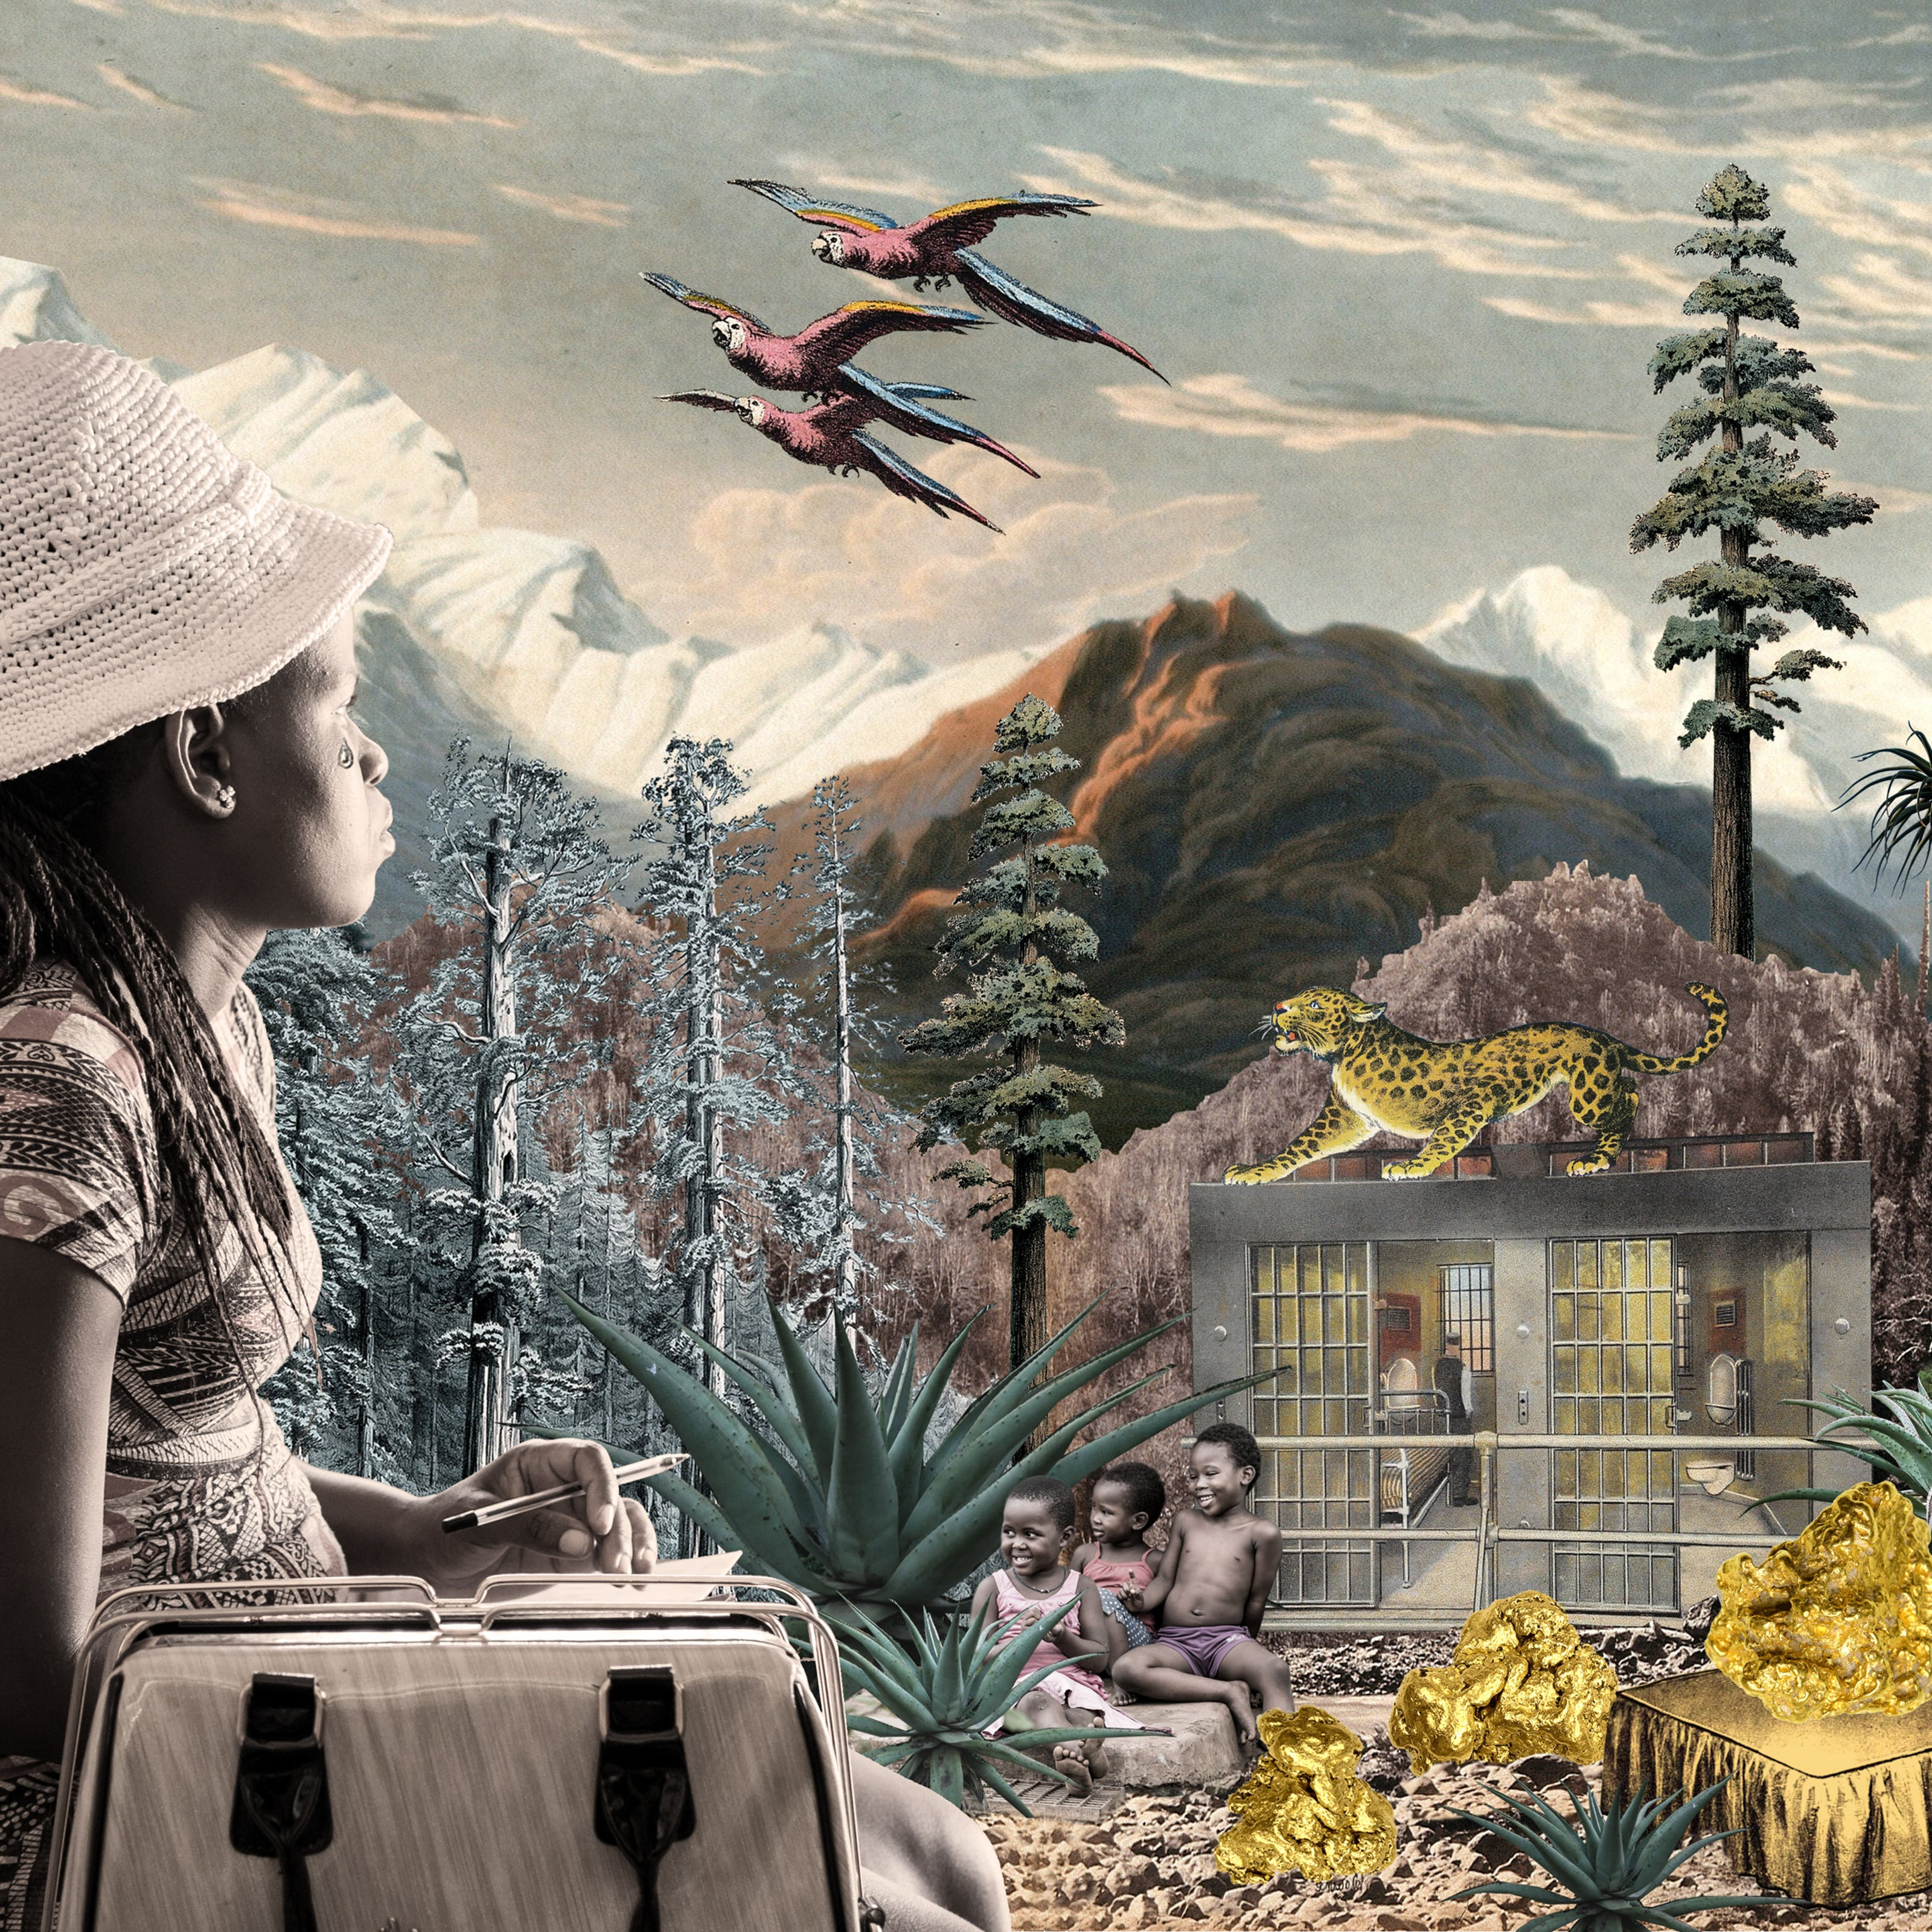 Artwork using collage. The collaged elements are made up of archive material which includes vintage and contemporary photographs, etchings, painted illustrations, lithographic prints and line drawings. This artwork depicts a scene with an urban and rural combined background, where high mountains and hills rise in the distance. In the middle distance are a series of tall trees and a jail like structure with bars. On top of the jail stands a large leopard looking up to the sky. In front of the jail are several large agave plants. Seated amongst them are three young children, smiling. To the right of the children is a large gold covered bed with a large gold nugget on top. At the foot of the bed are 2 more golden nuggets. Siting on the headboard is a colourful parrot in red, blue and orange. To the right of the parrot is a modern glass building with a long pathway leading up to the entrance. In the foreground on the left side of the image is a woman wearing a pattered dress and knitted to crocheted hat. Beside her is a large handbag. In her hand she is holding a biro and a piece of paper. She is looking away into the distant hills with a tear rolling down her right cheek. In the cloud scattered sky above are 3 parrots in flight and a large moon like orb. A blue bird sits in a high tree on the right, a pink heart shape in its mouth.